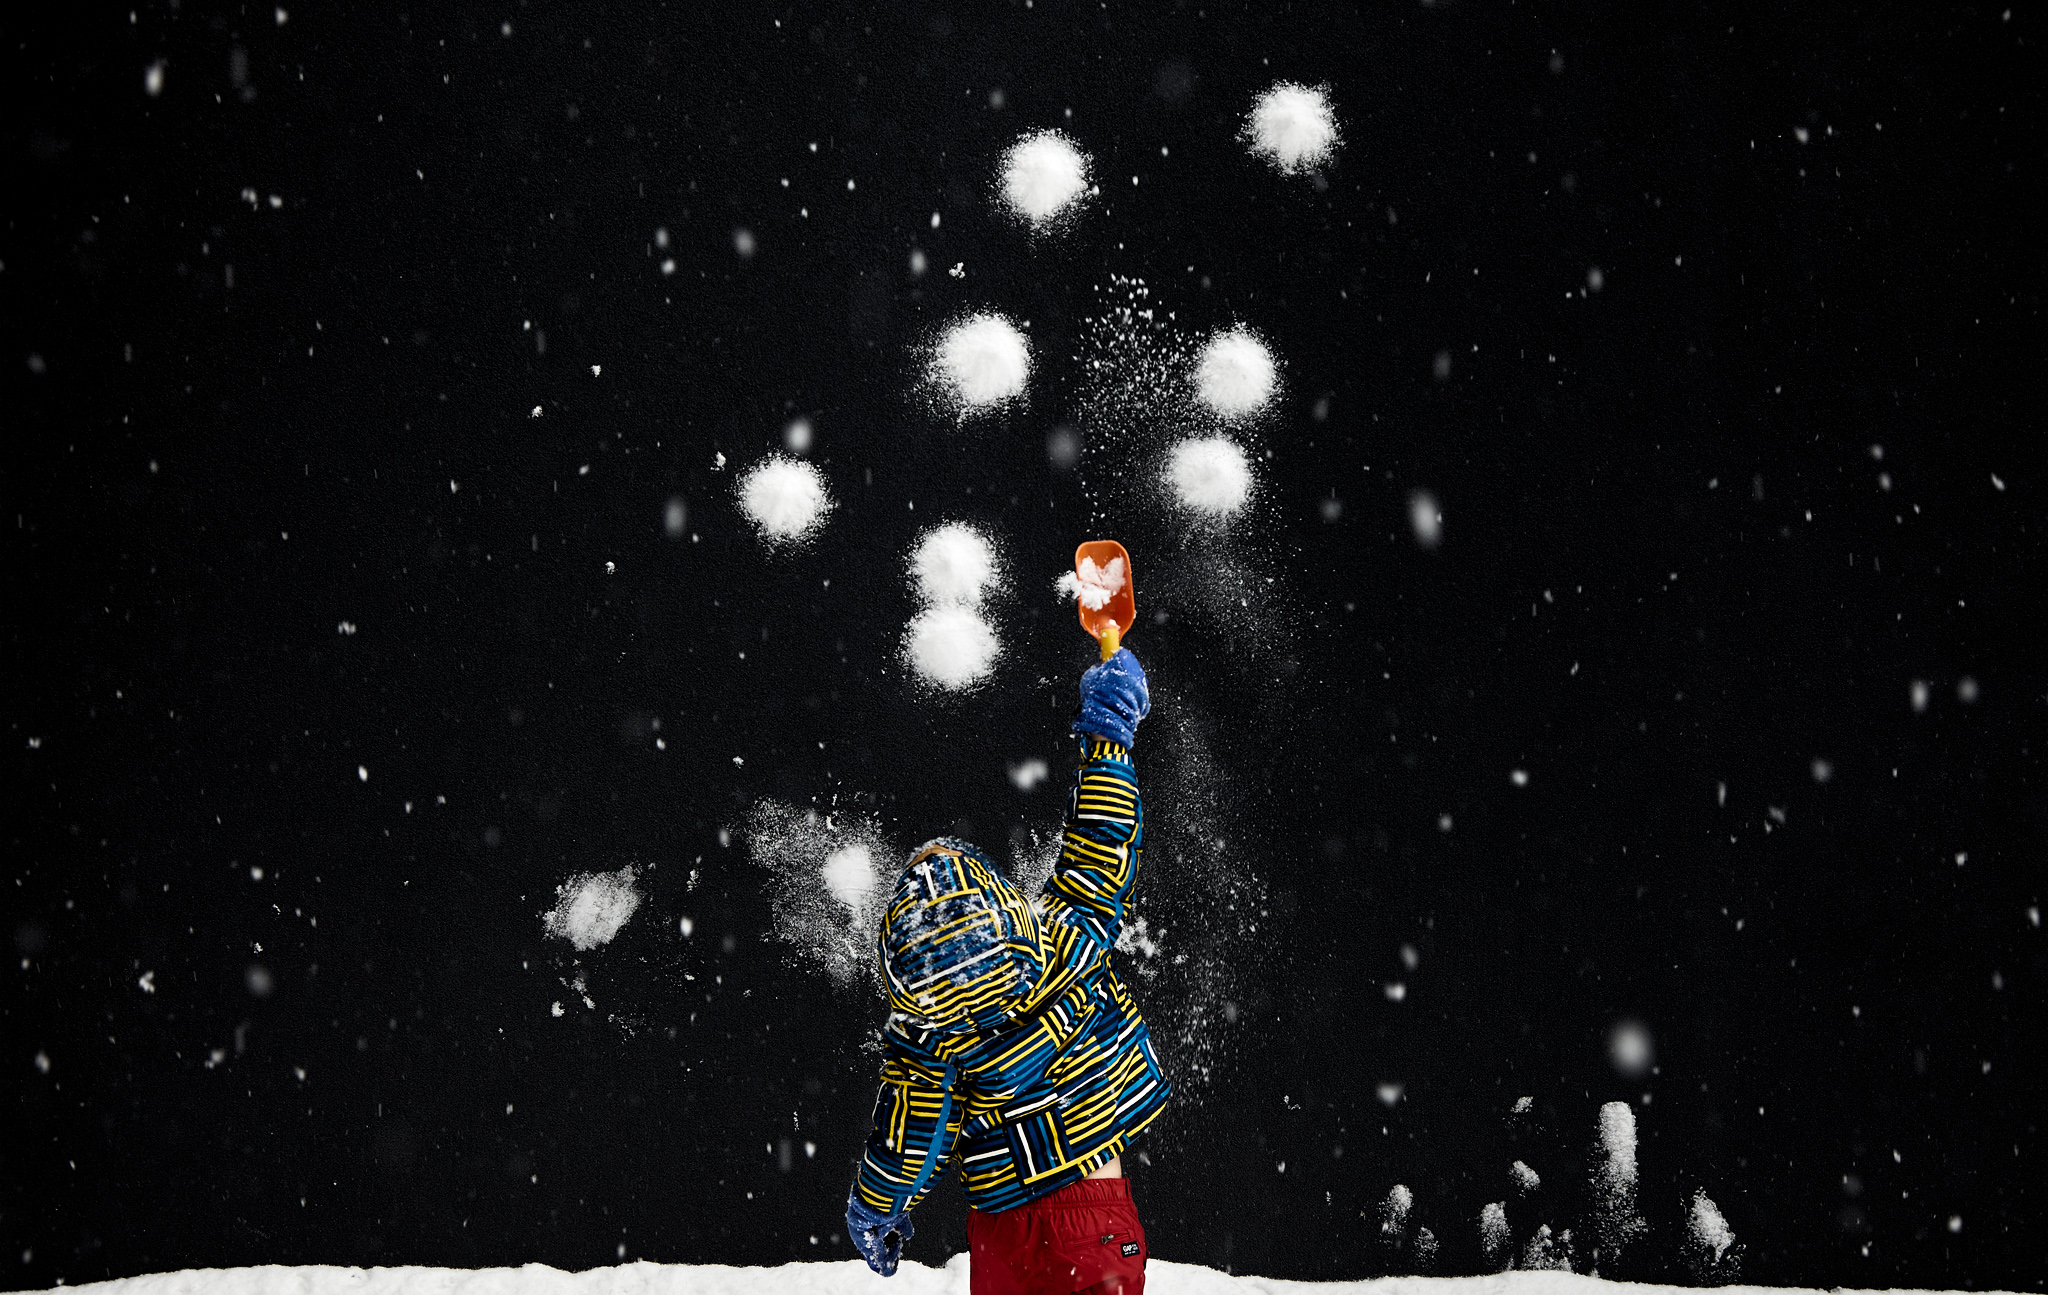 boy_winter_snow_wall_01.jpg